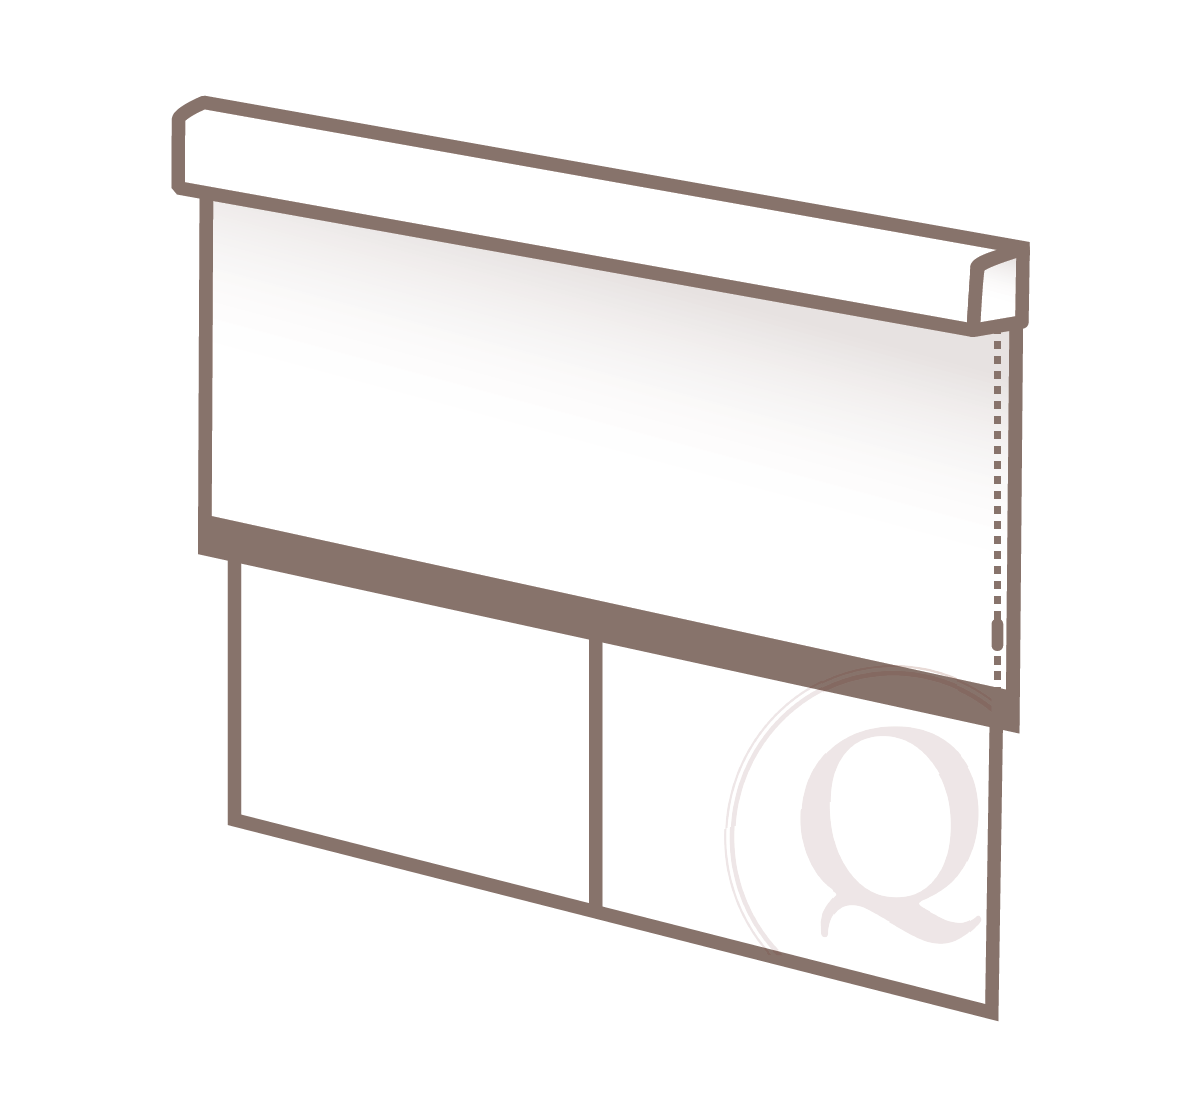 outside mount - When a roller shade is mounted on the wall or ceiling above the window, extending outside the window opening.